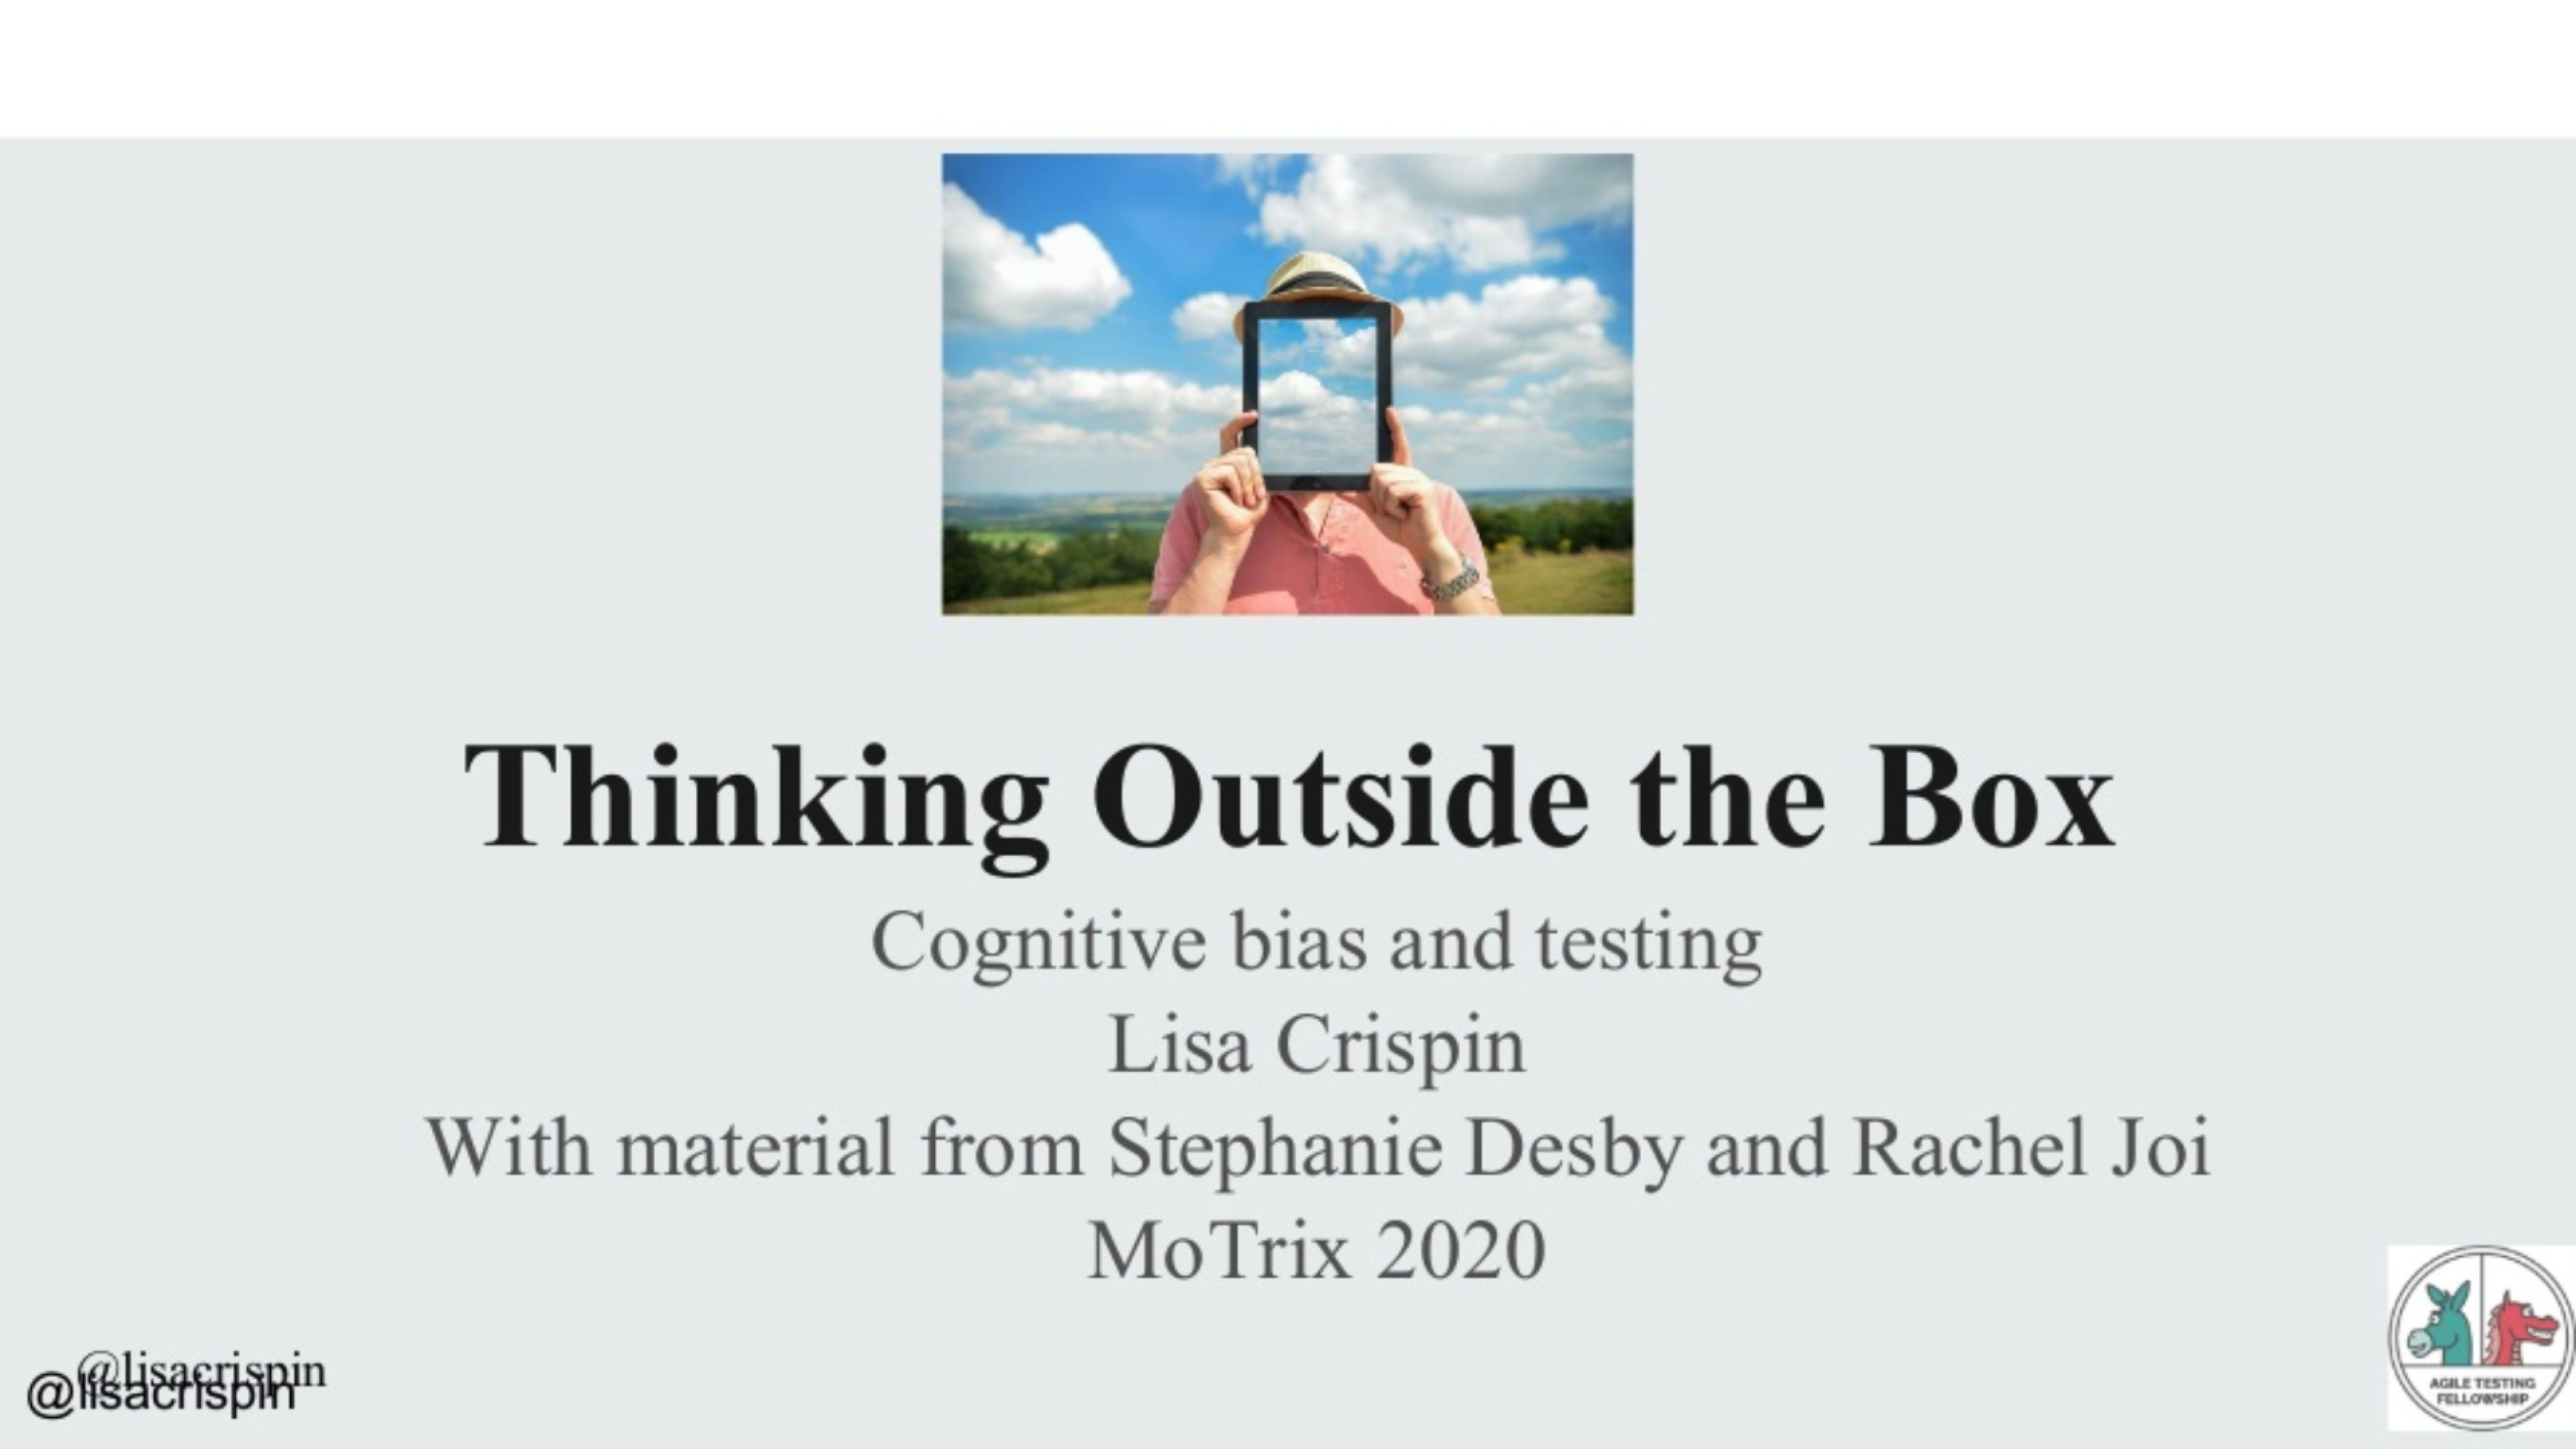 Thinking Outside the Box with Lisa Crispin